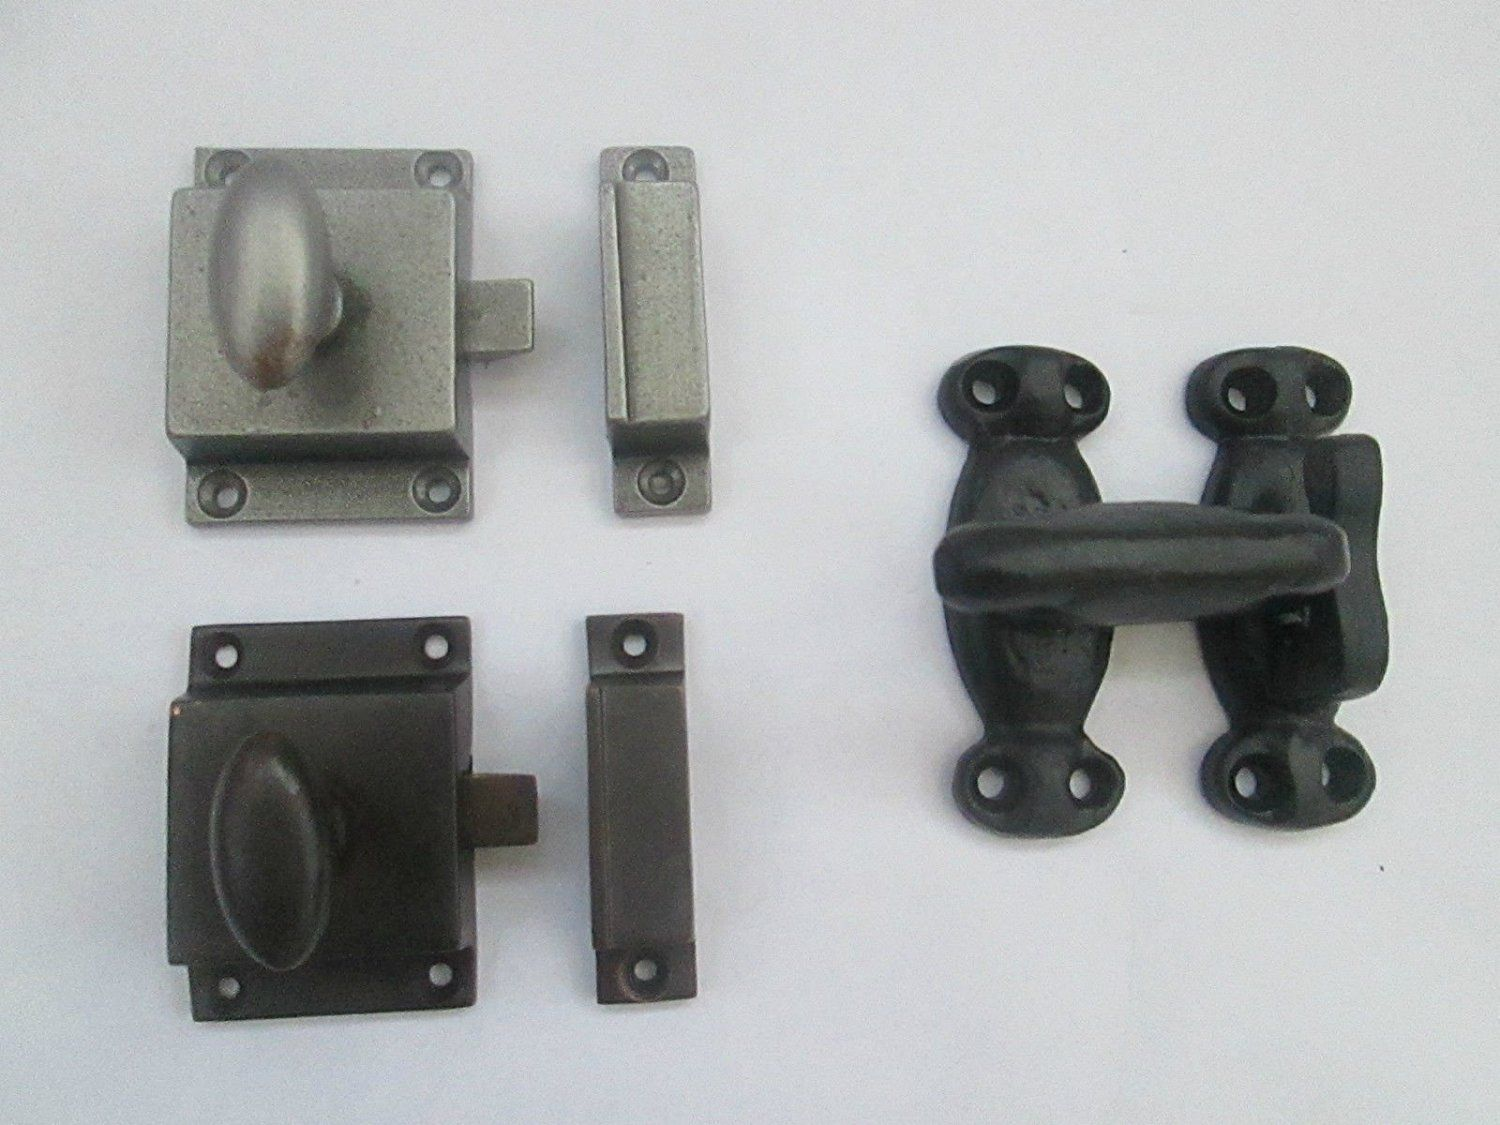 Ironmongery World Cupboard Cabinet Door Thumb Turn Thumbturn Catch Latch Lock By Ironmongery World You Can Find More De Cabinet Catches Cupboard Latches